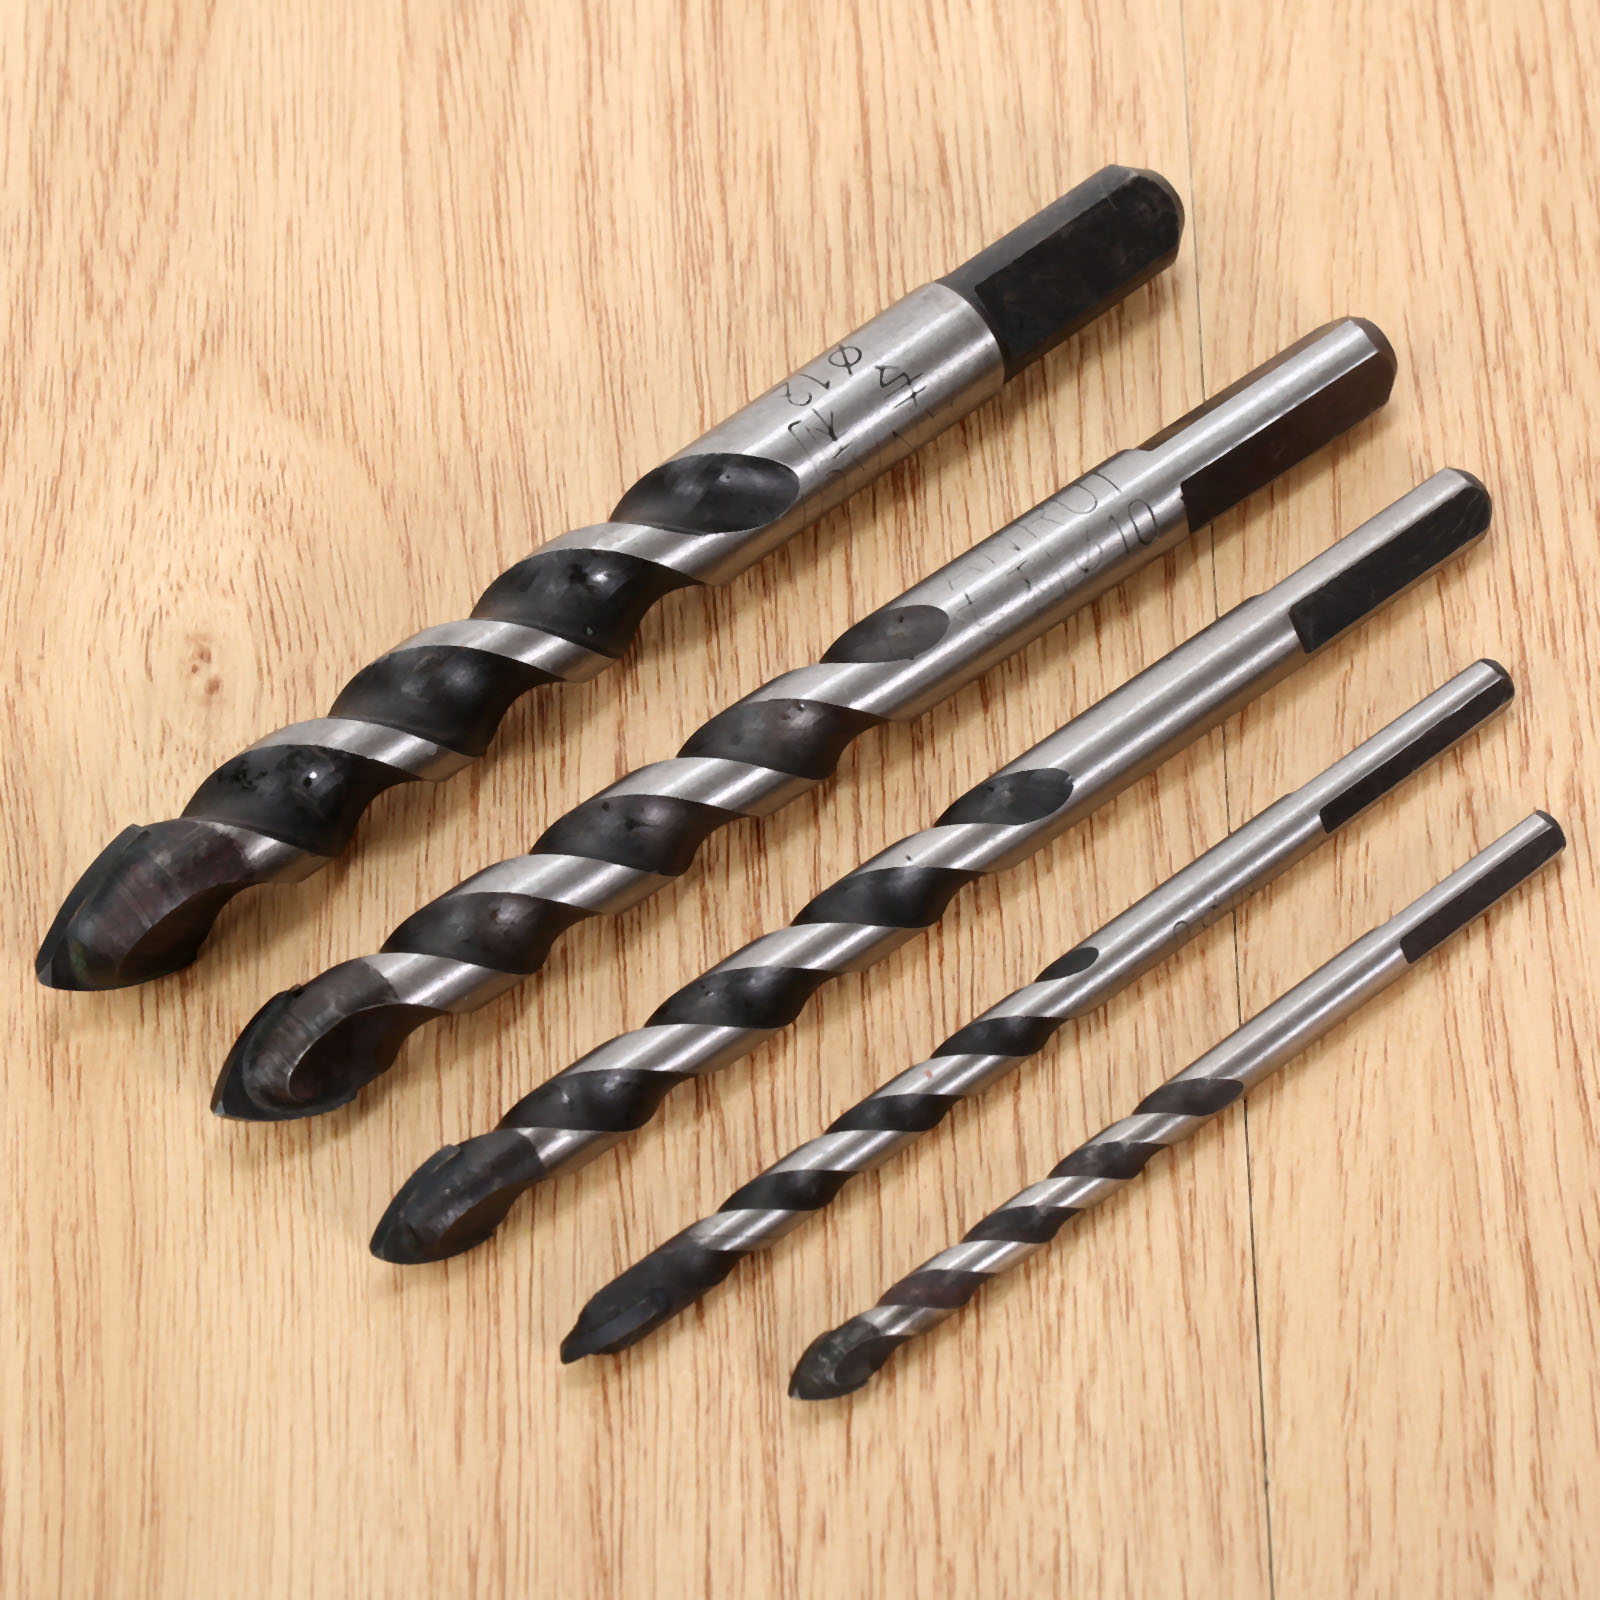 5Pcs Drywall Tungsten Carbide Drill Bit Set for Wood Ceramic Tile Marble Mirror Glass 5/6/8/10/12mm w/ Triangle Shank Power Tool 4 pieces tungsten carbide glass drill bits for ceramic tile marble mirror 6mm 8mm 10mm 12mm